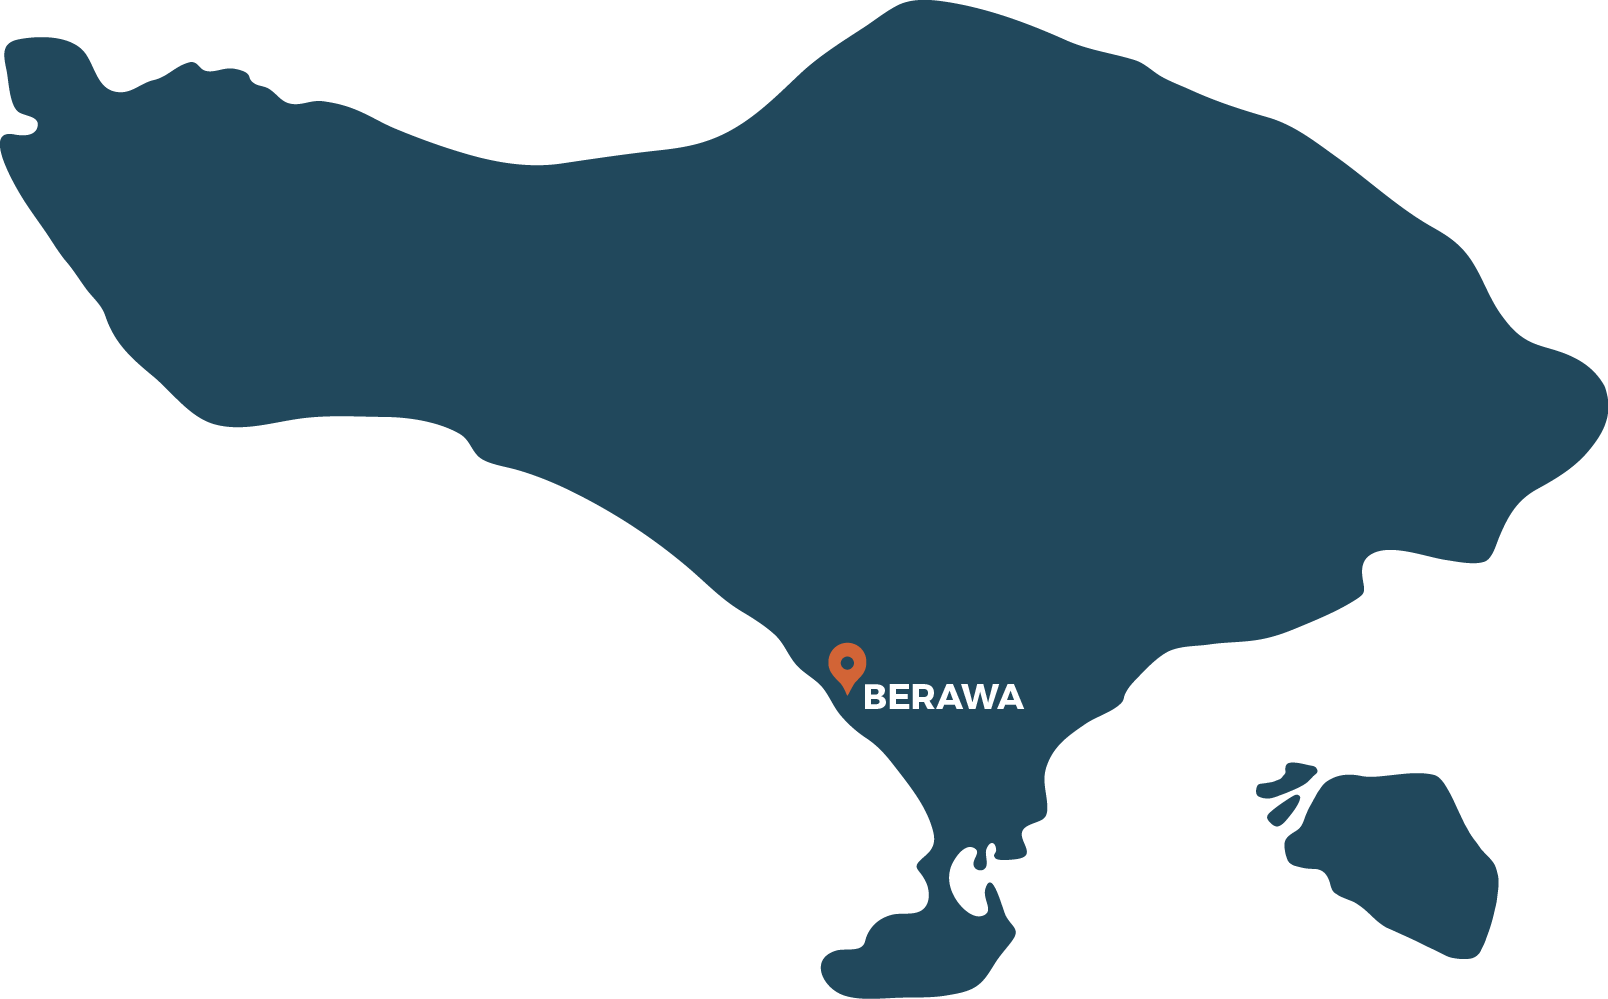 K Club Berawa